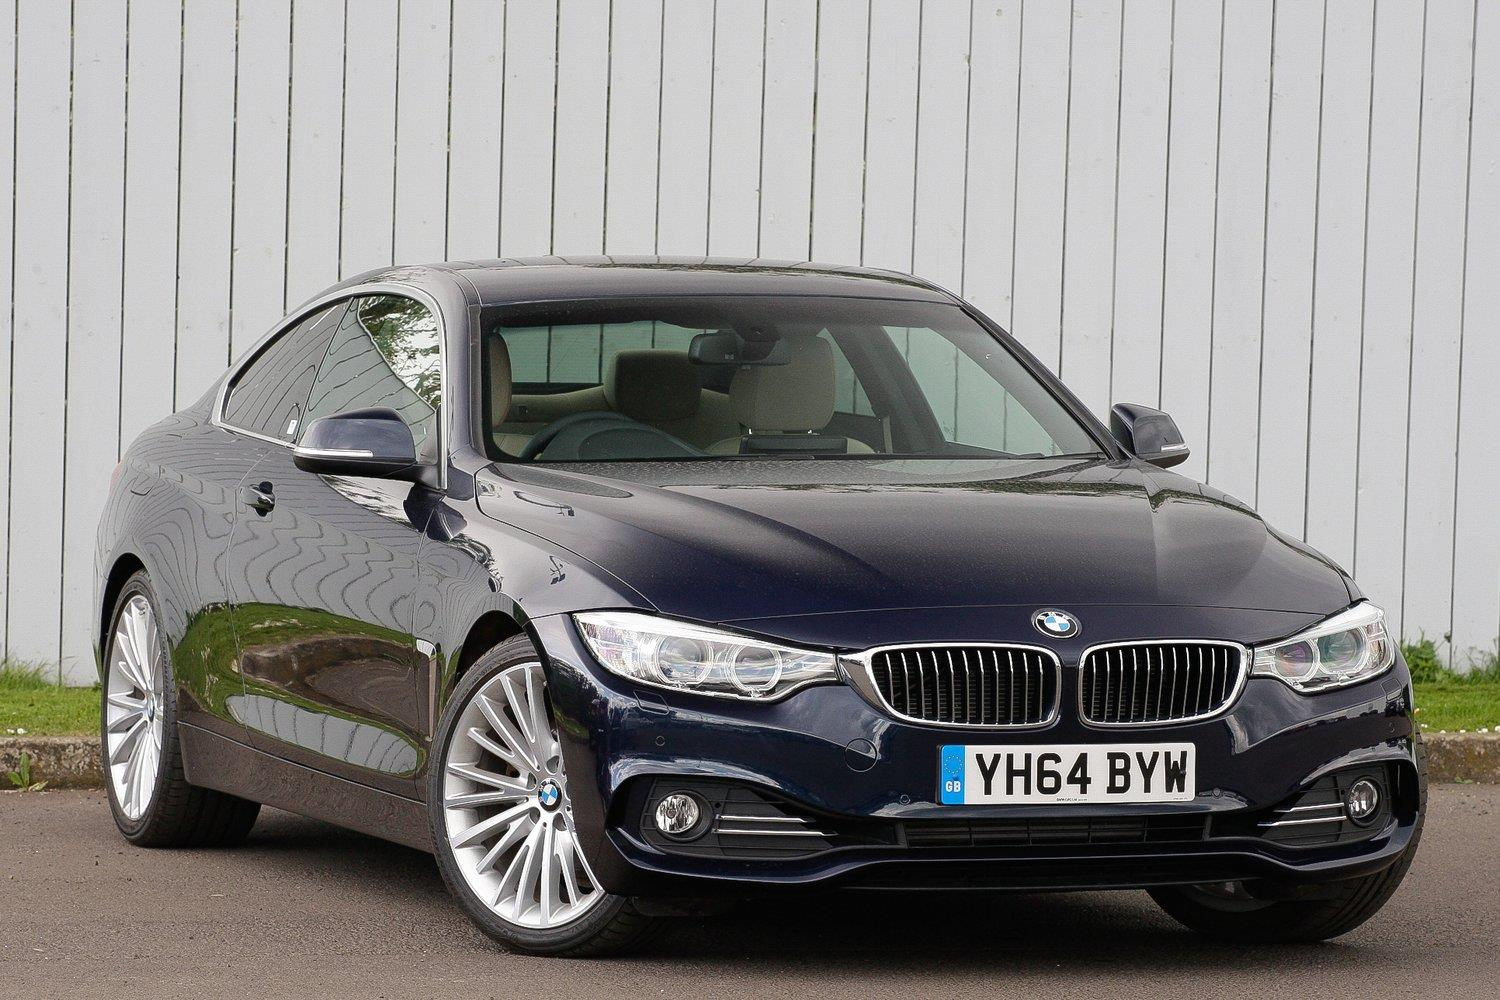 BMW 4 Series Coupé YH64BYW - Image 10